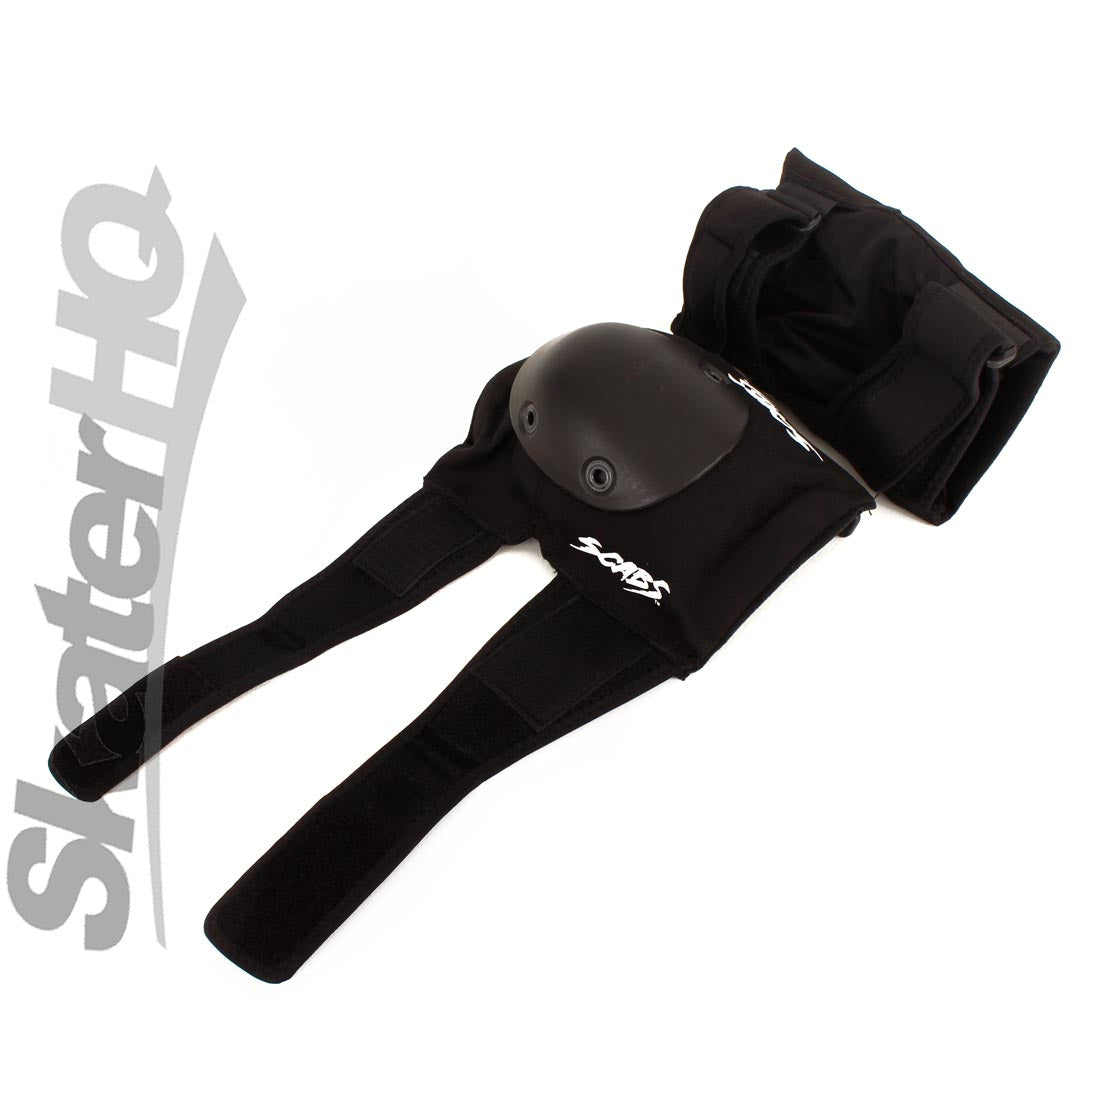 SMITH Scabs Elite Elbow Pads L/XL